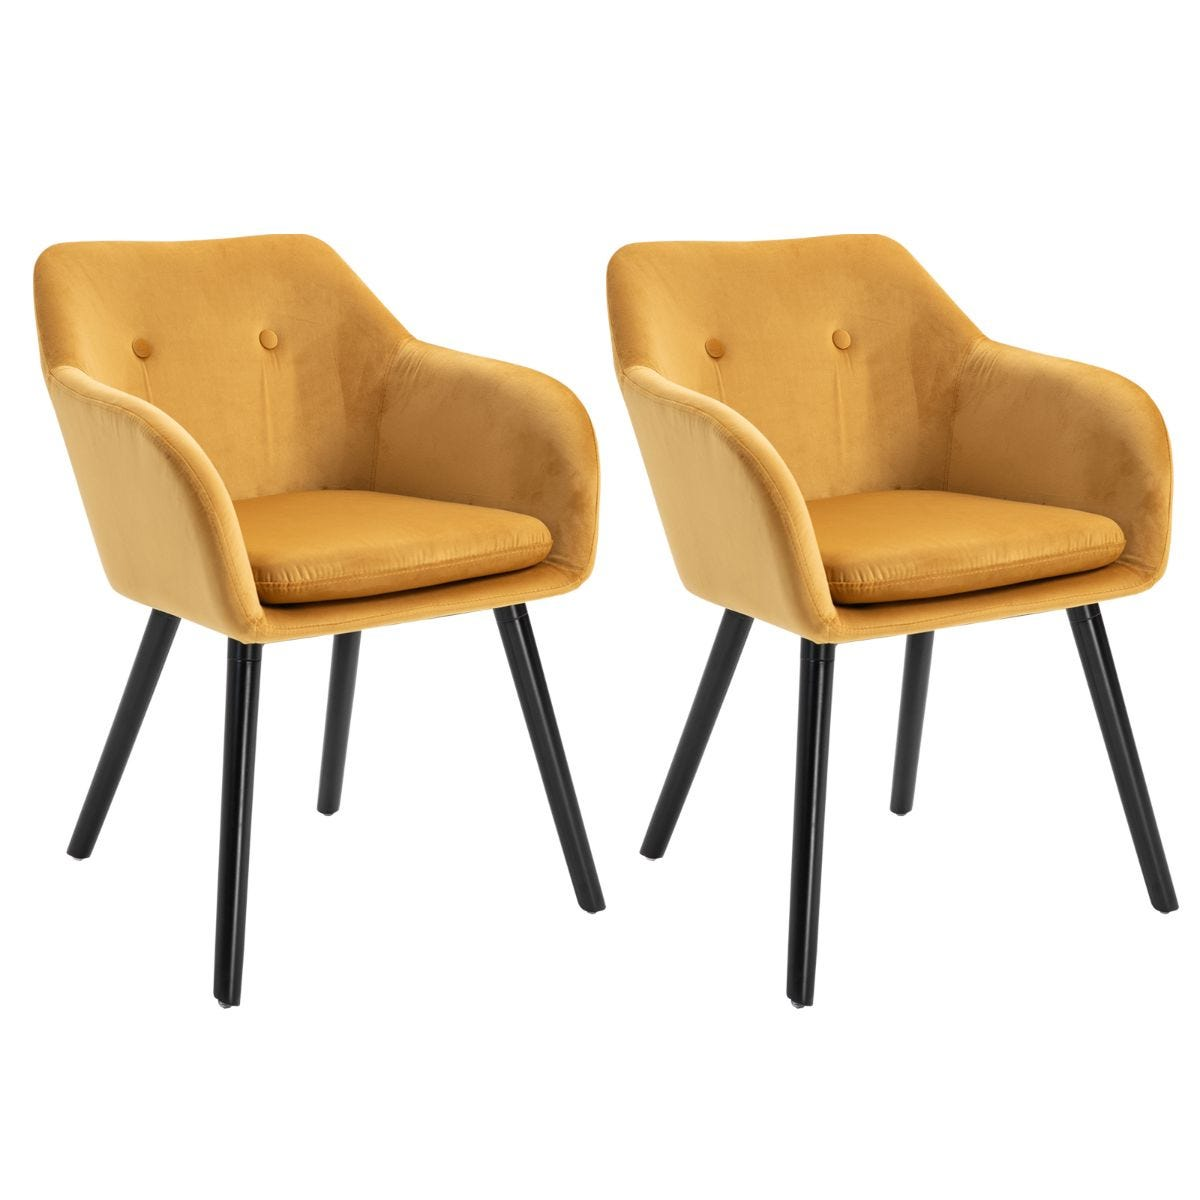 Set of 2 Modern Upholstered Fabric Bucket Seat Dining Armchairs Yellow